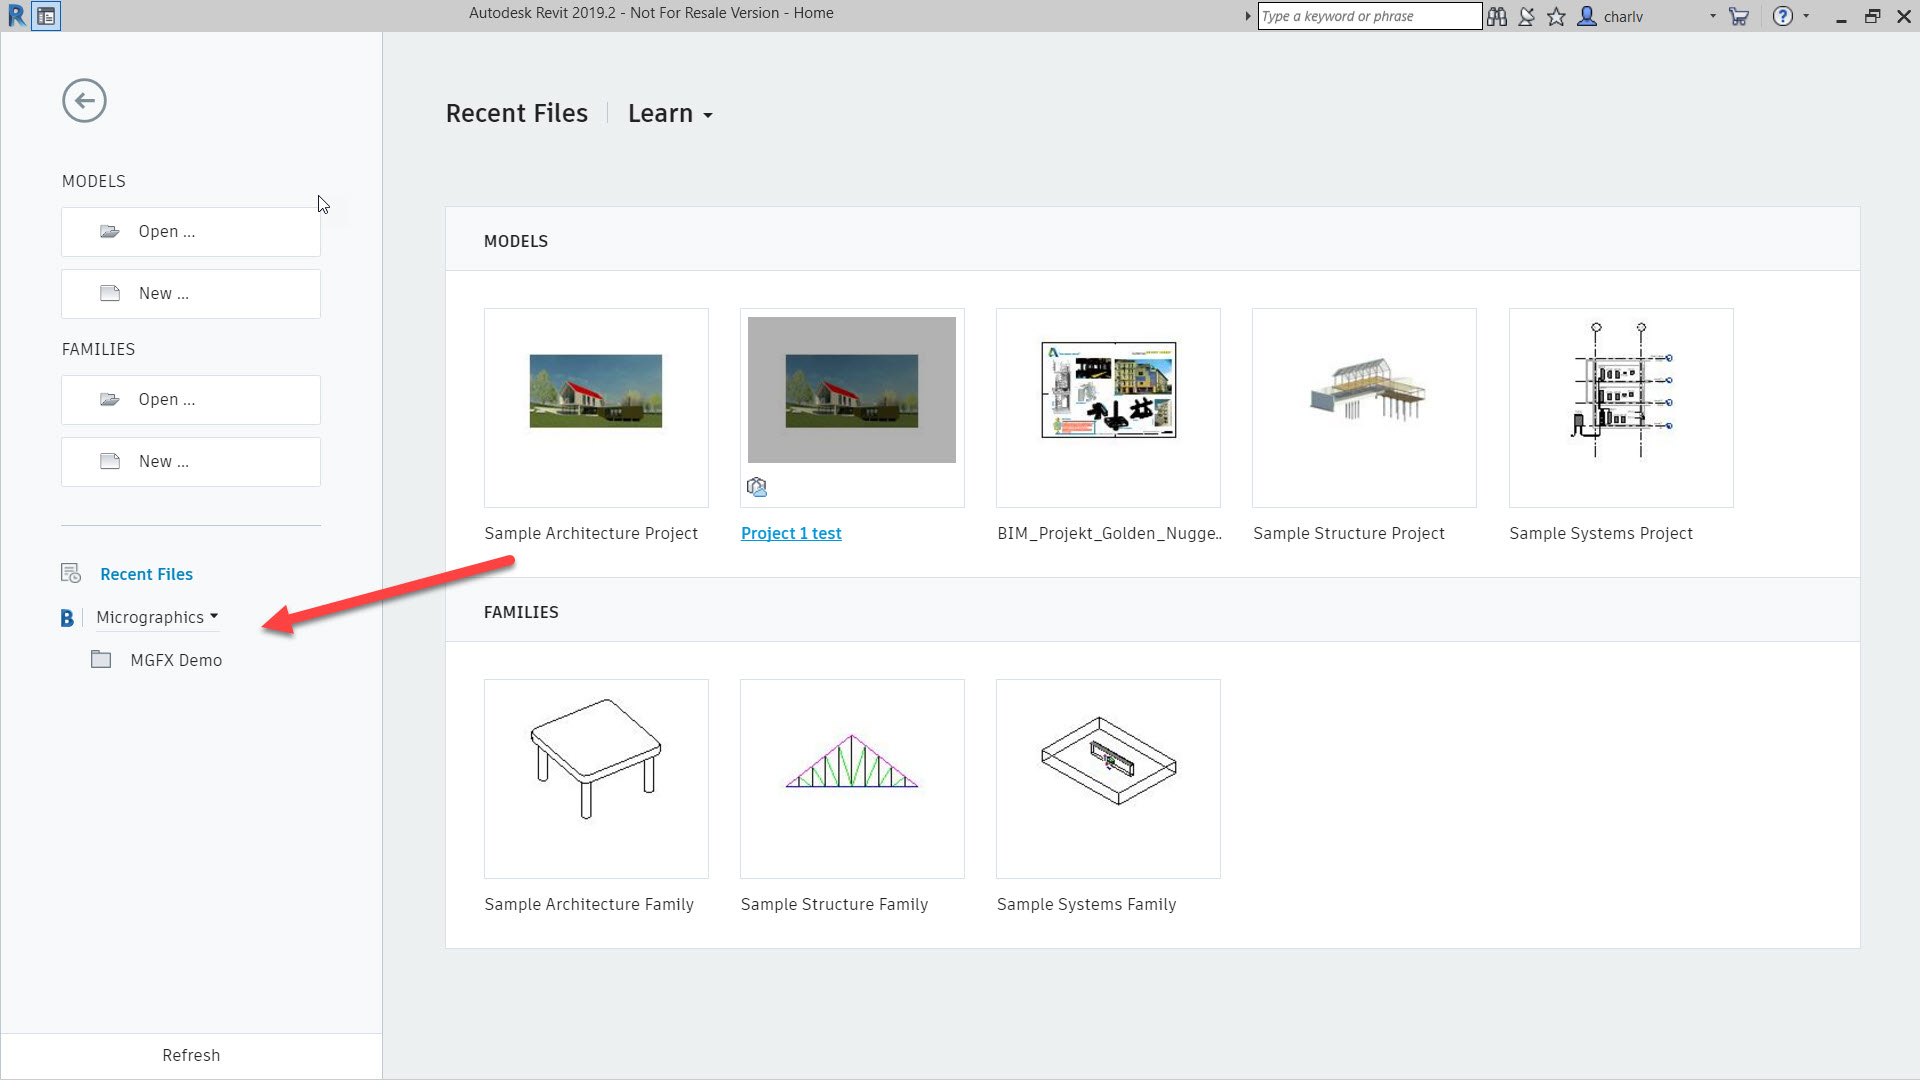 Revit 2019 2 Update Released Micrographics